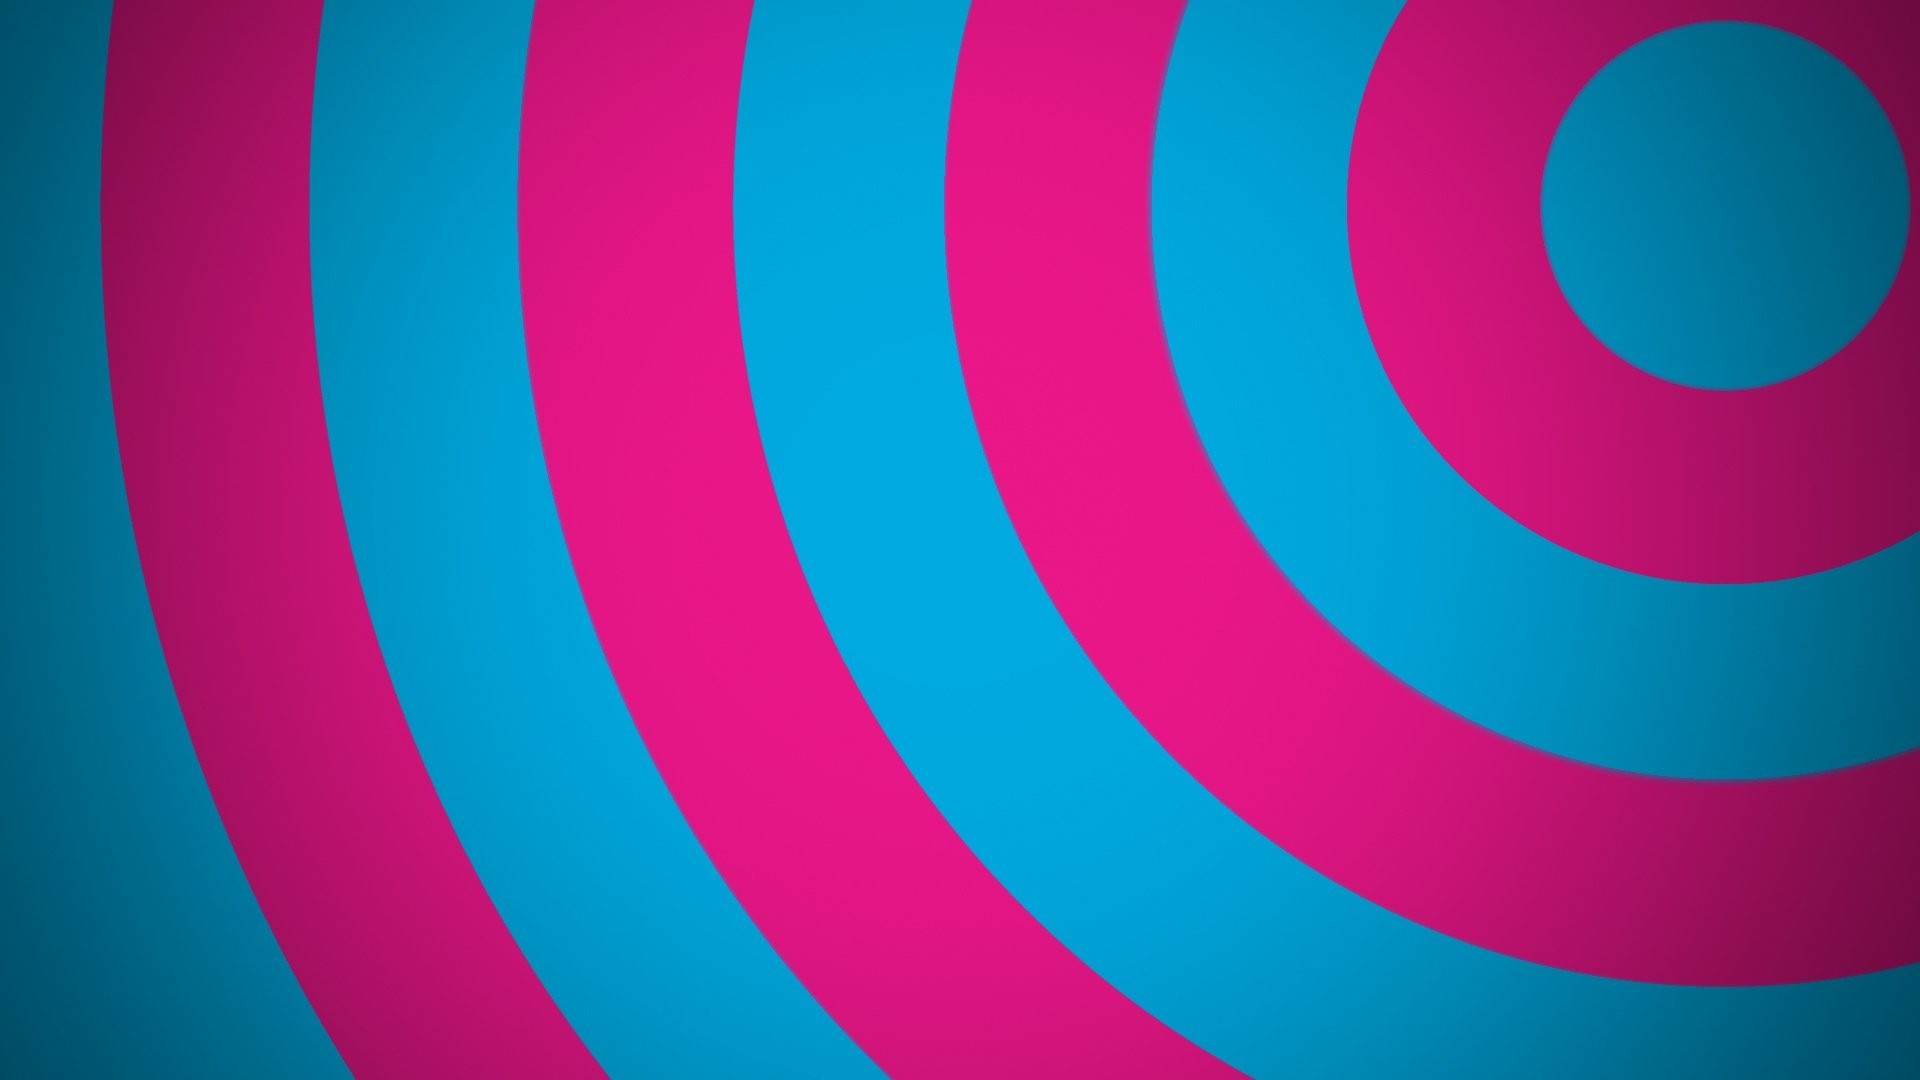 Pink And Blue Background Wallpaper